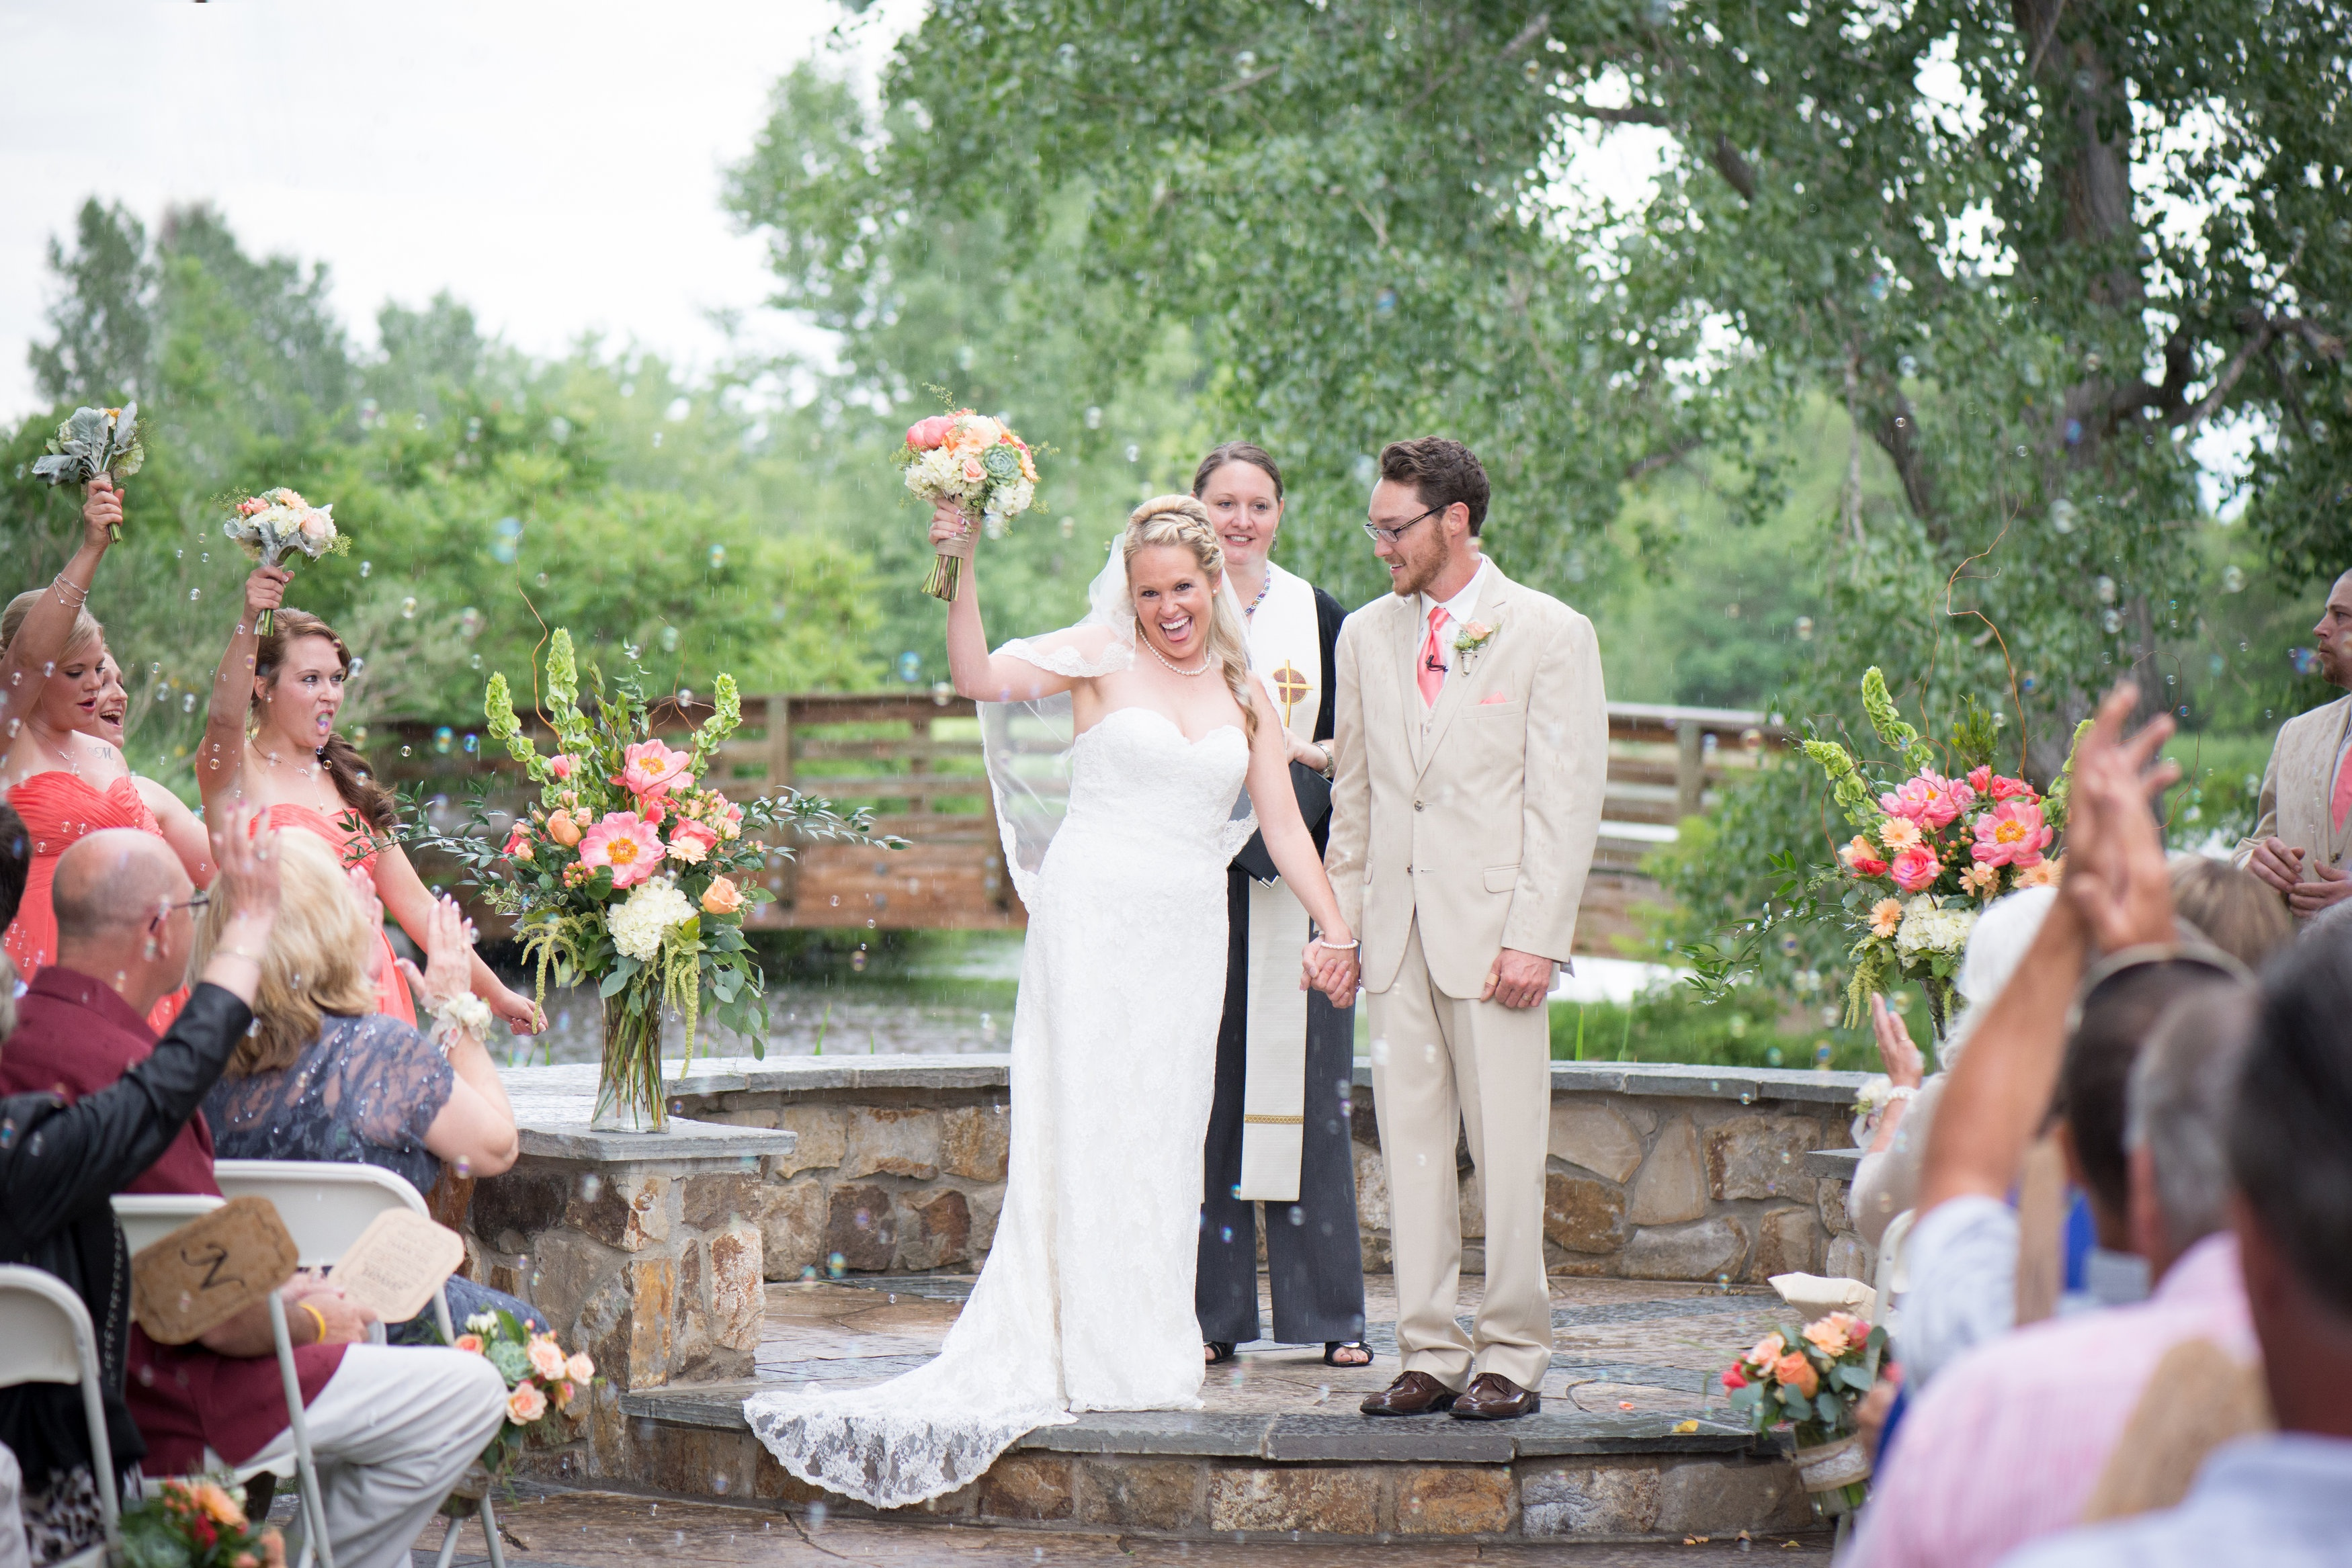 Fiori Wedding.How To Choose Wedding Flowers For A Gorgeous Outcome Amore Fiori